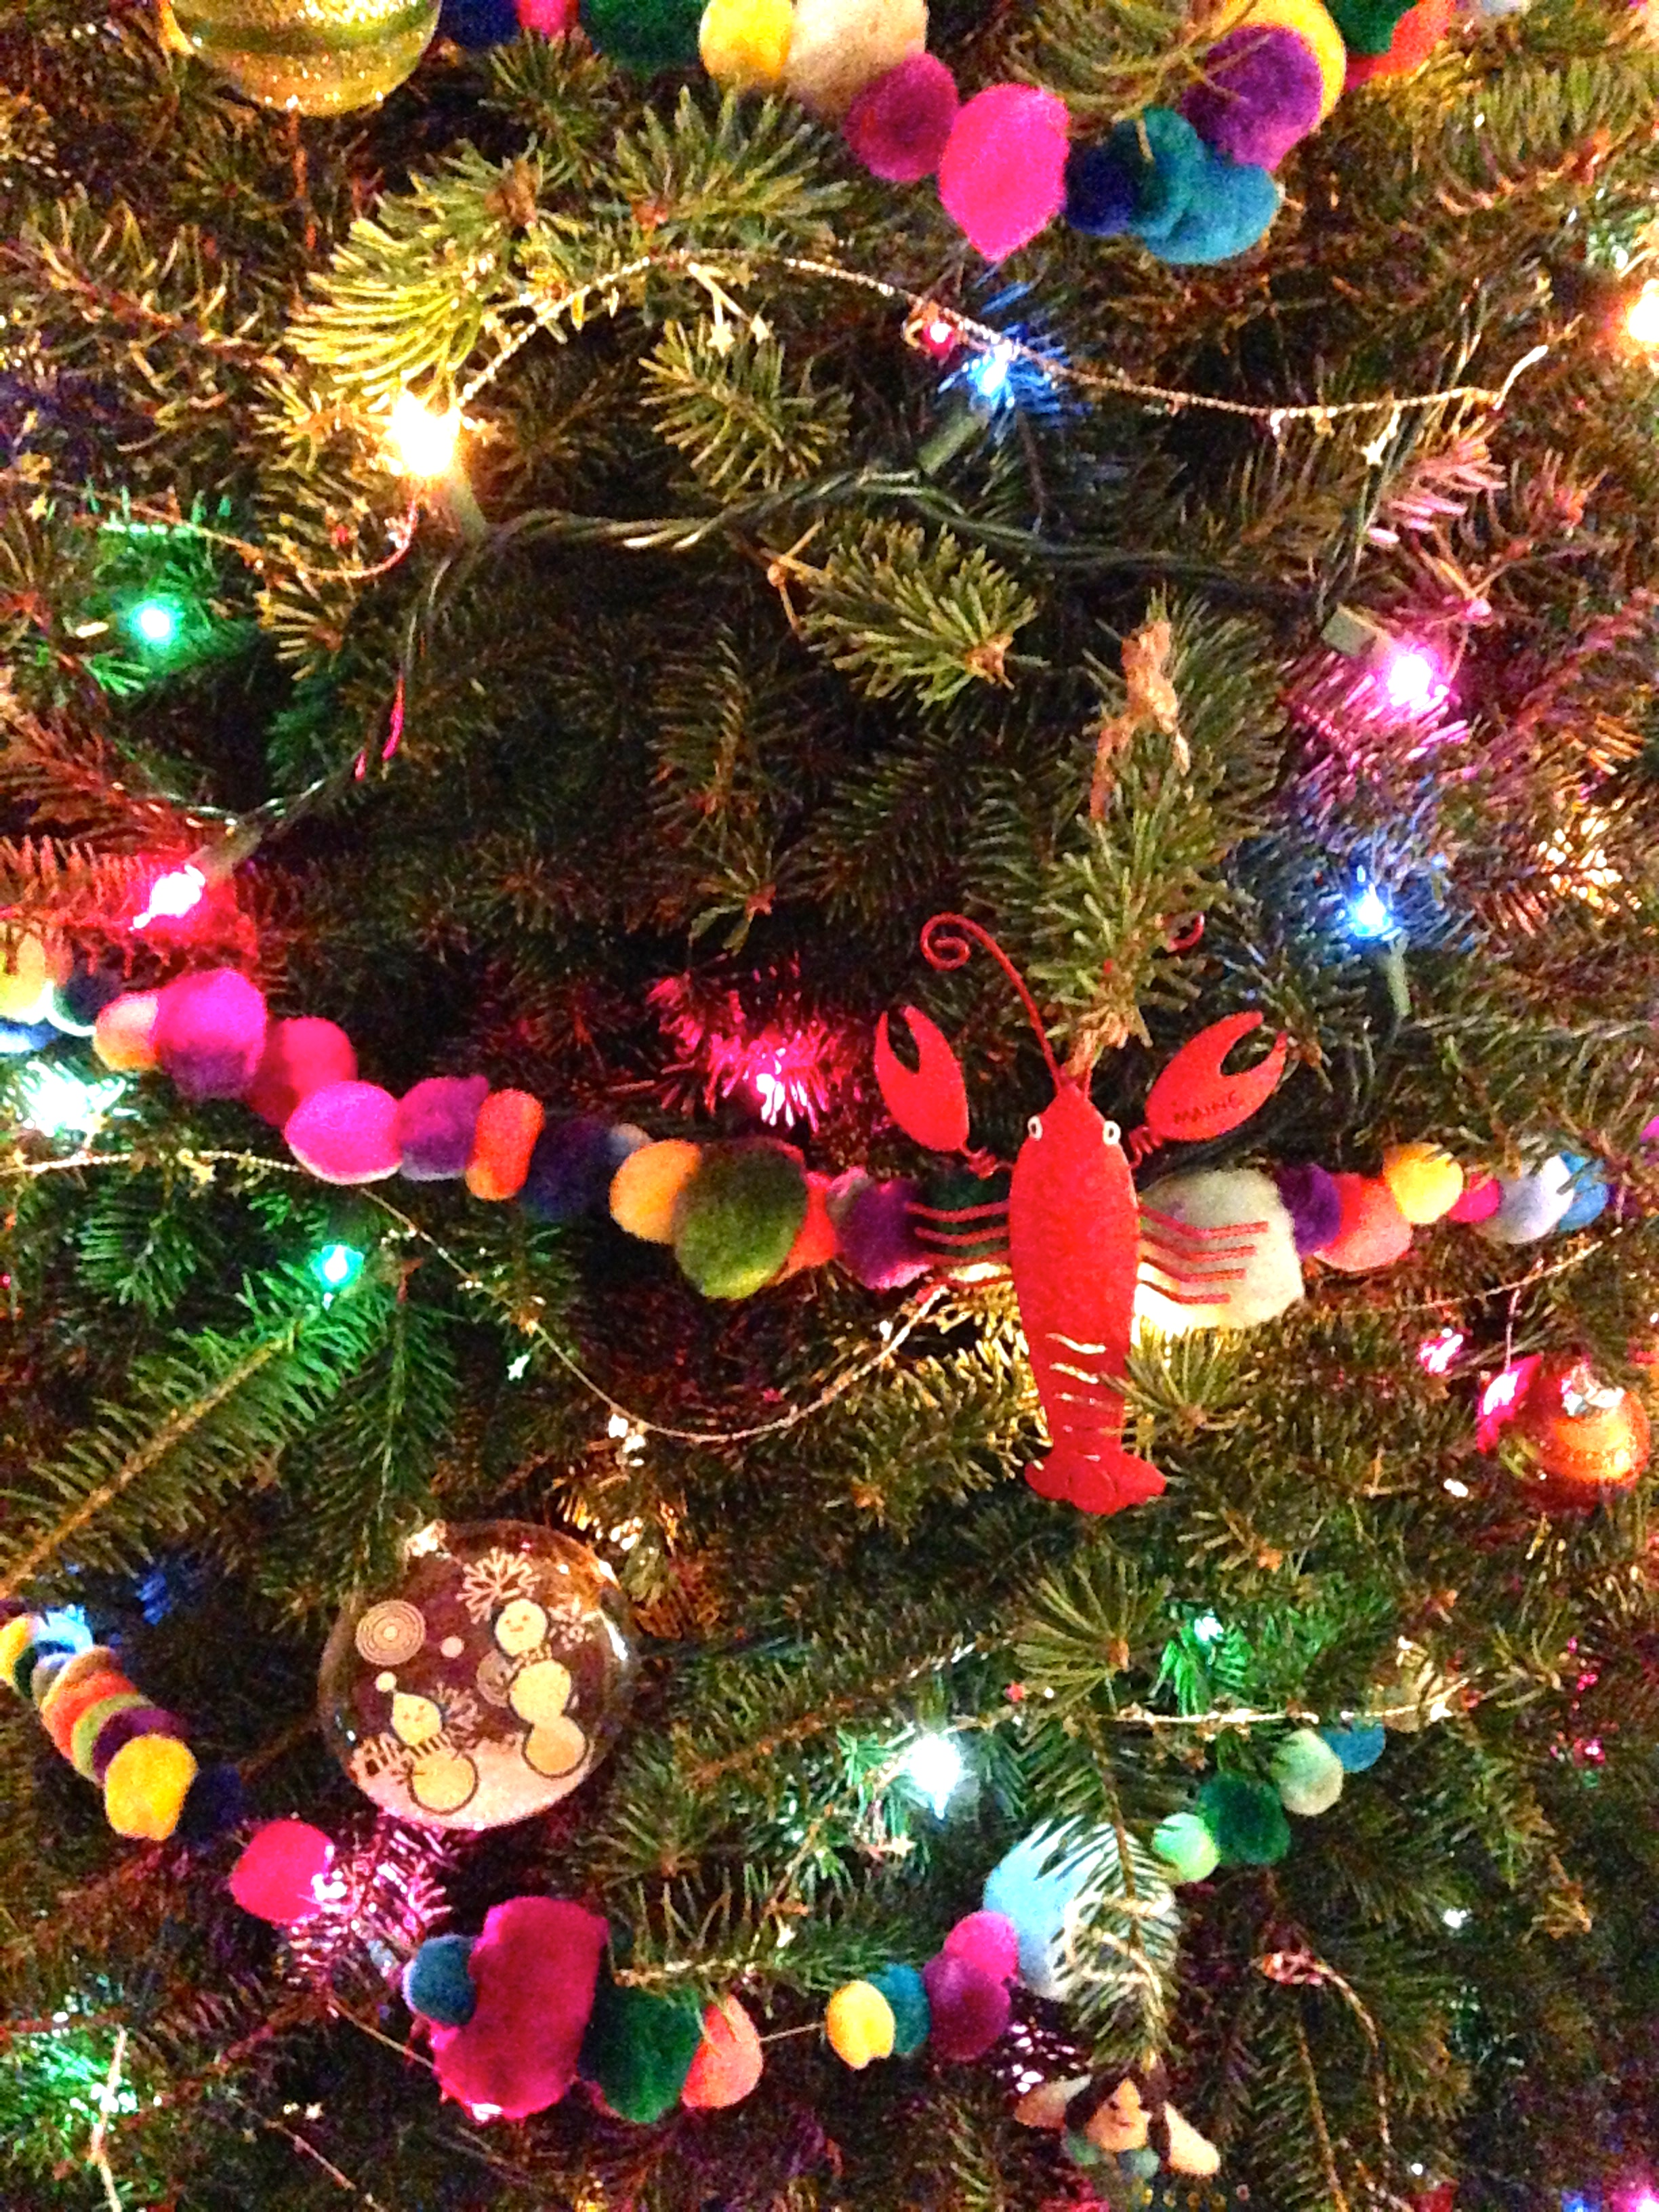 Even my Maine lobster is enjoying the new garland on the tree!